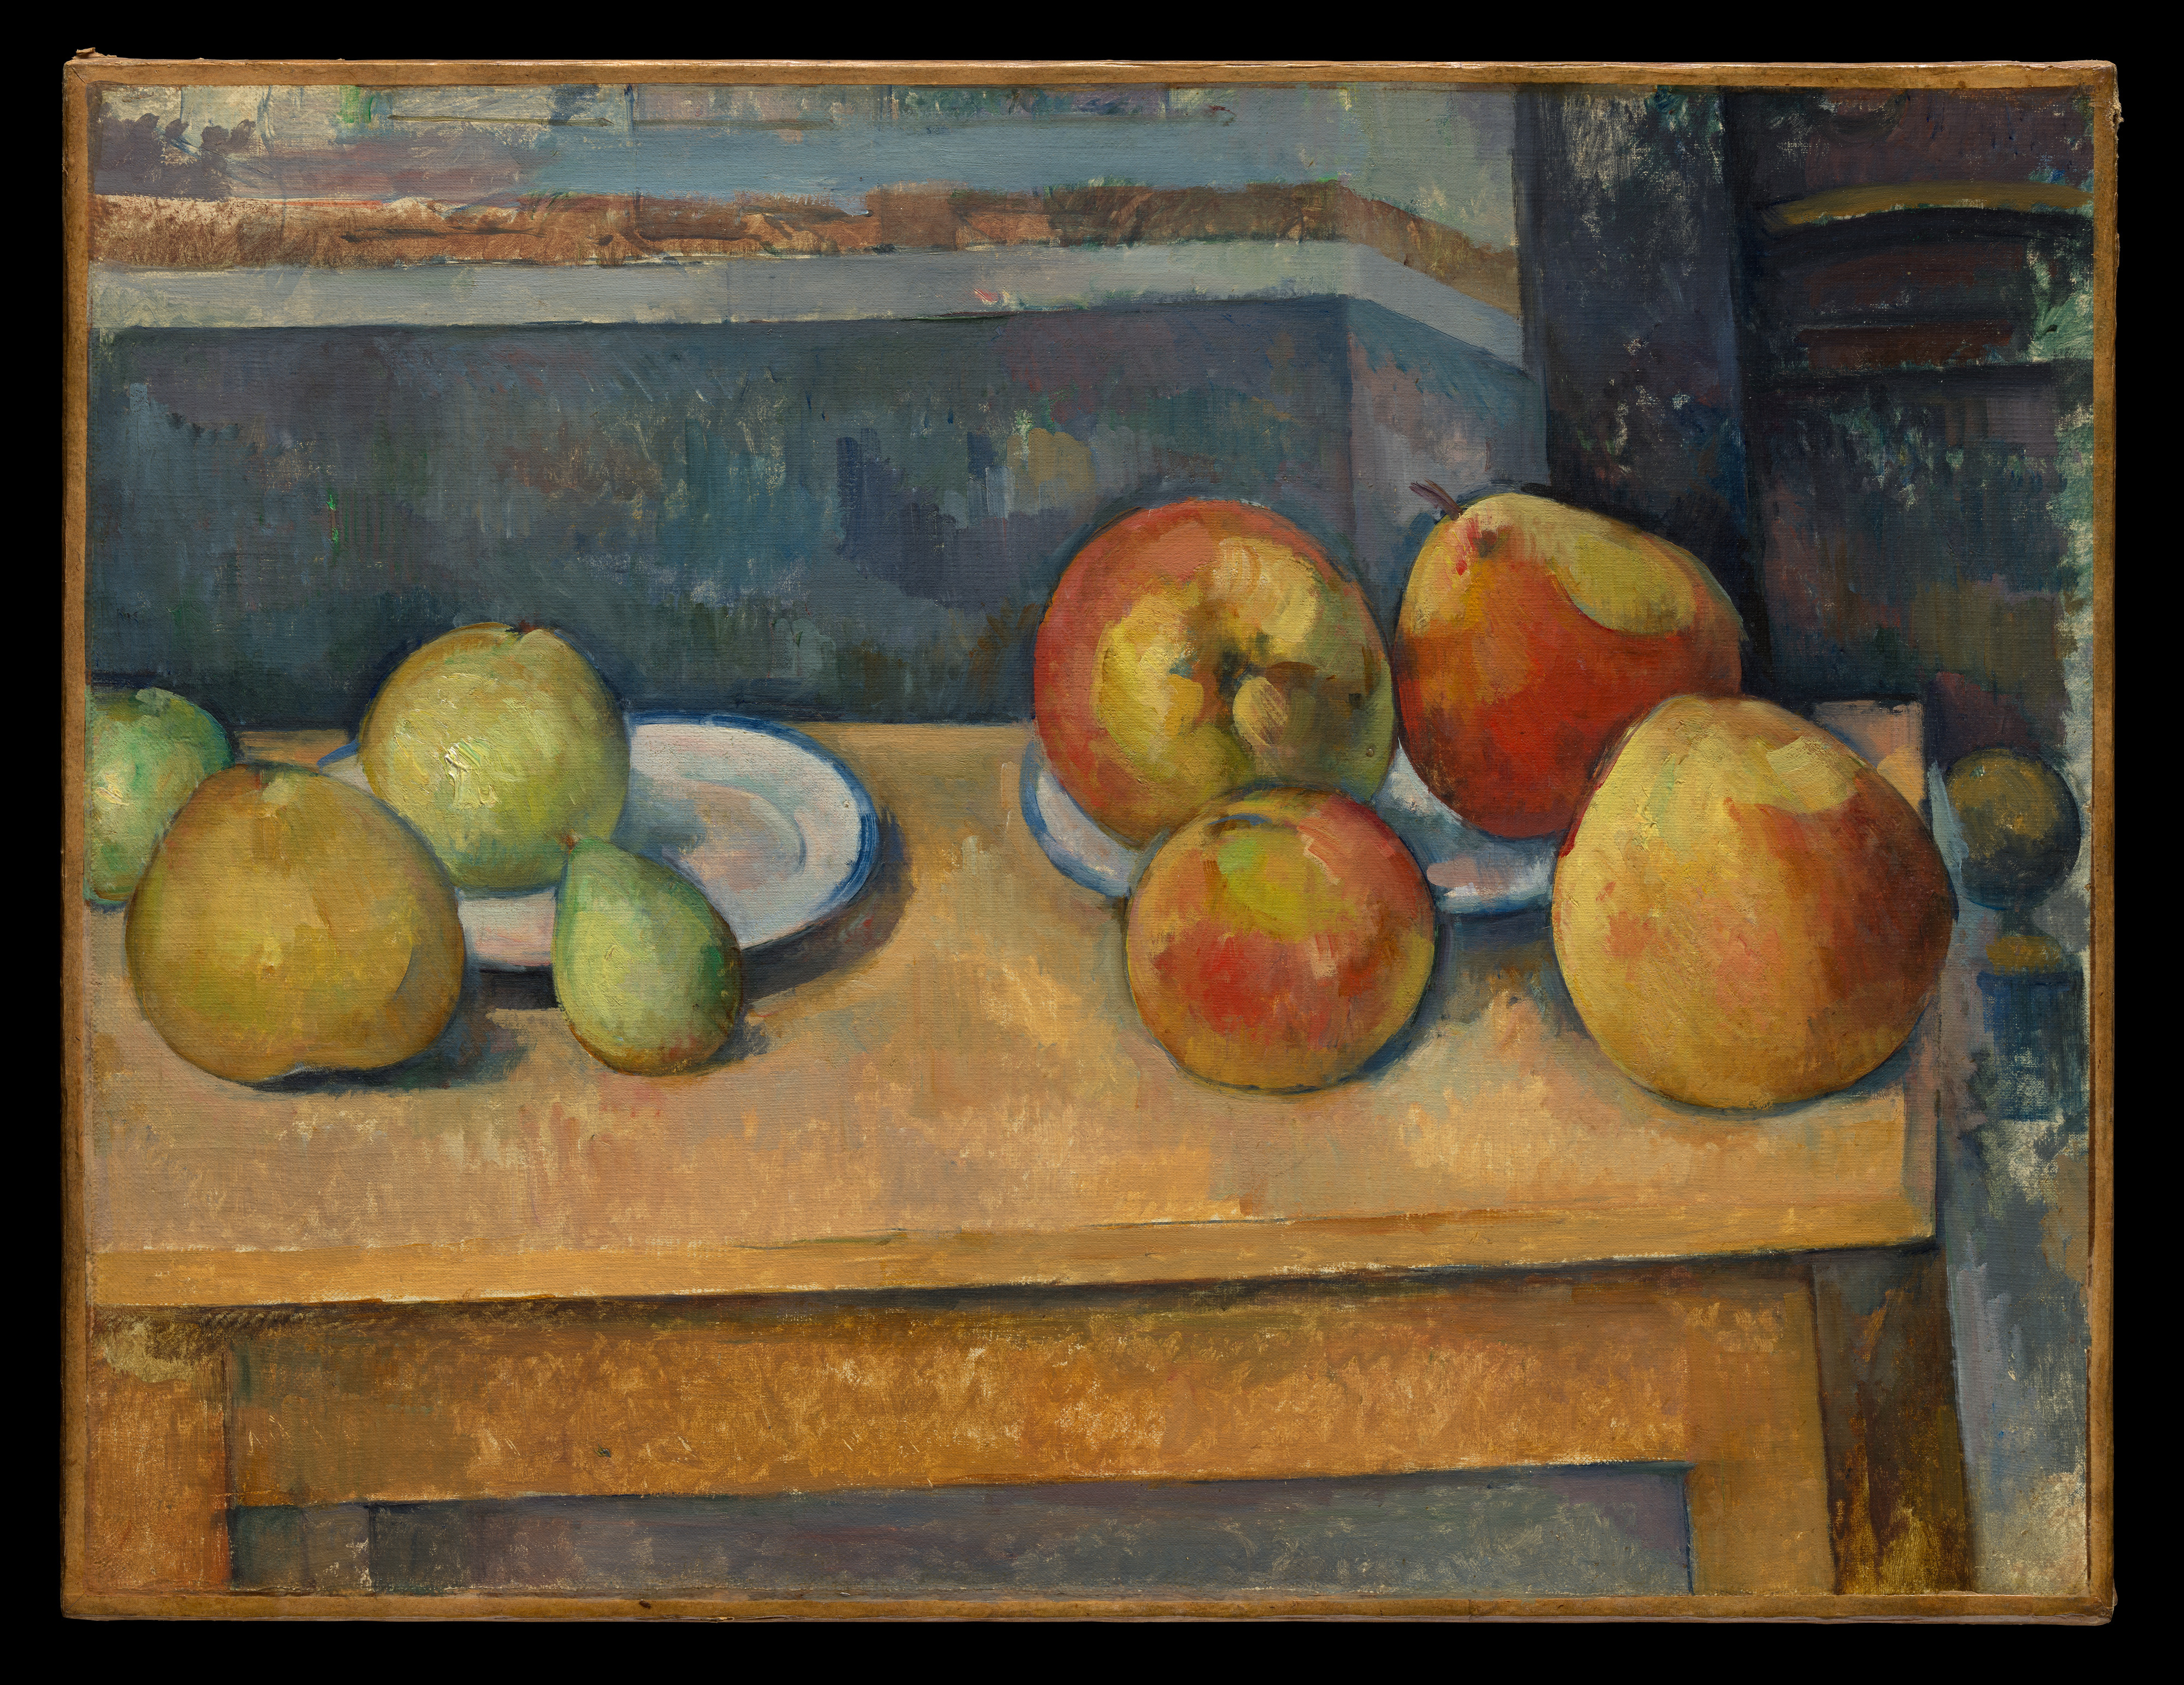 C Maison Et Jardin Magazine paul cézanne   still life with apples and pears   the met